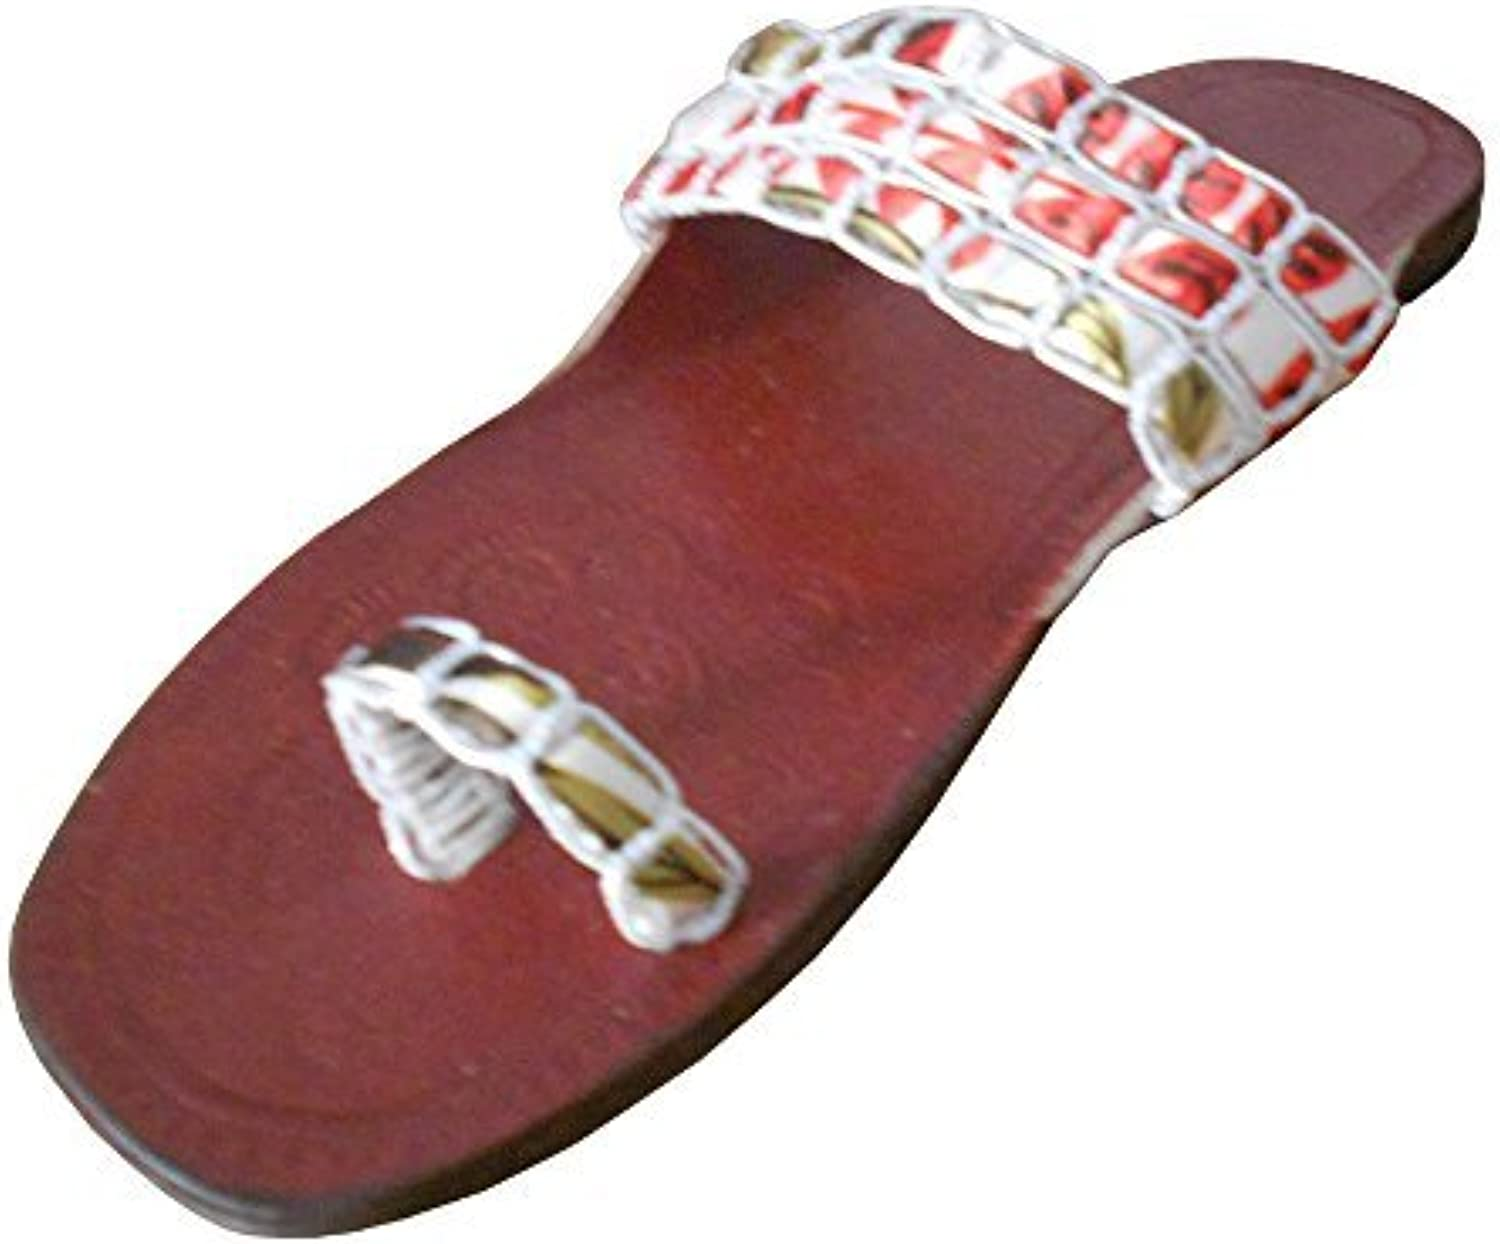 Kalra Creations Women's Traditional Leather Ethnic Slippers